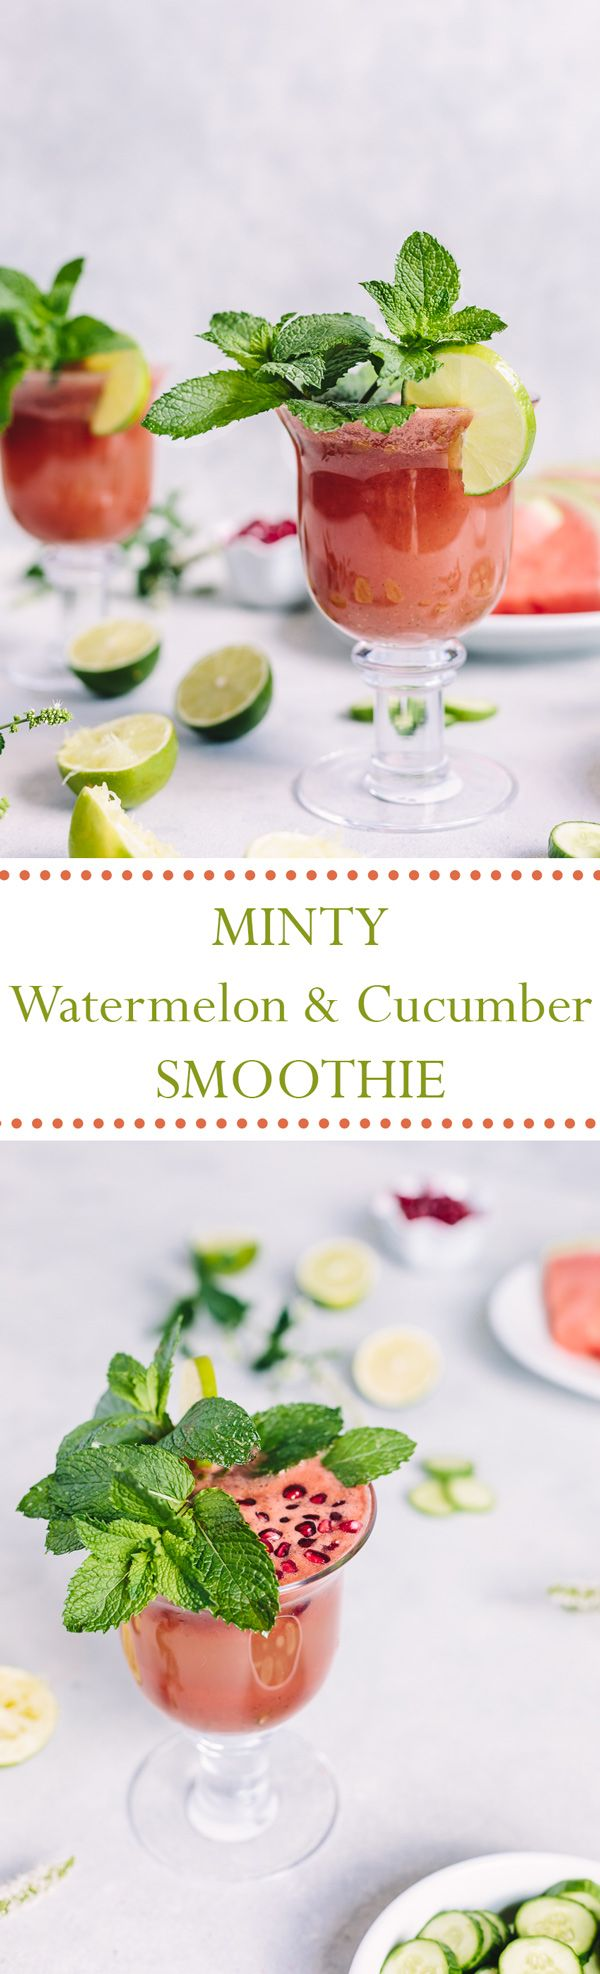 Minty Watermelon Cucumber Smoothie - A refreshing summer smoothie made with fresh mint, watermelon, cucumber, and lime juice. Vegan + GF + No sugar added.